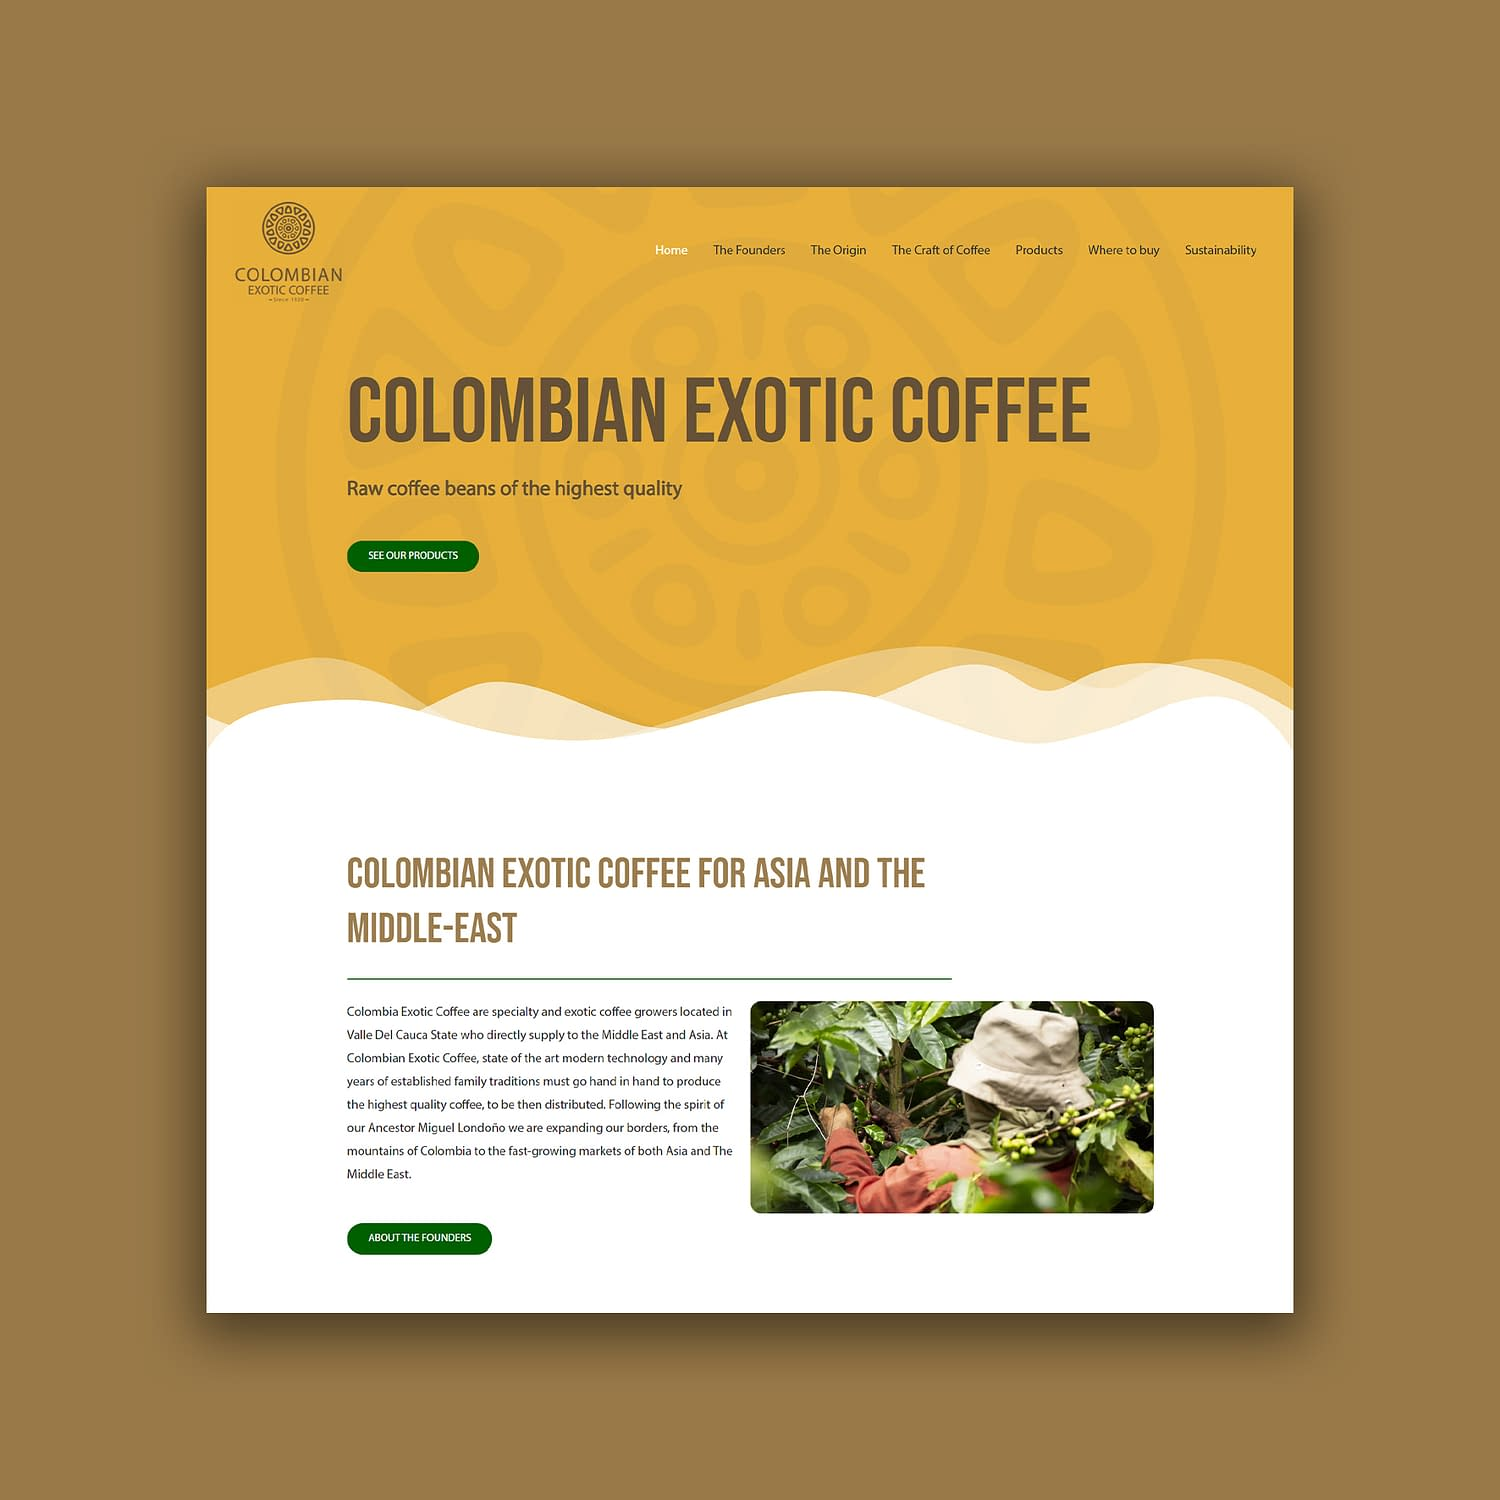 Colombian Exotic Coffee website